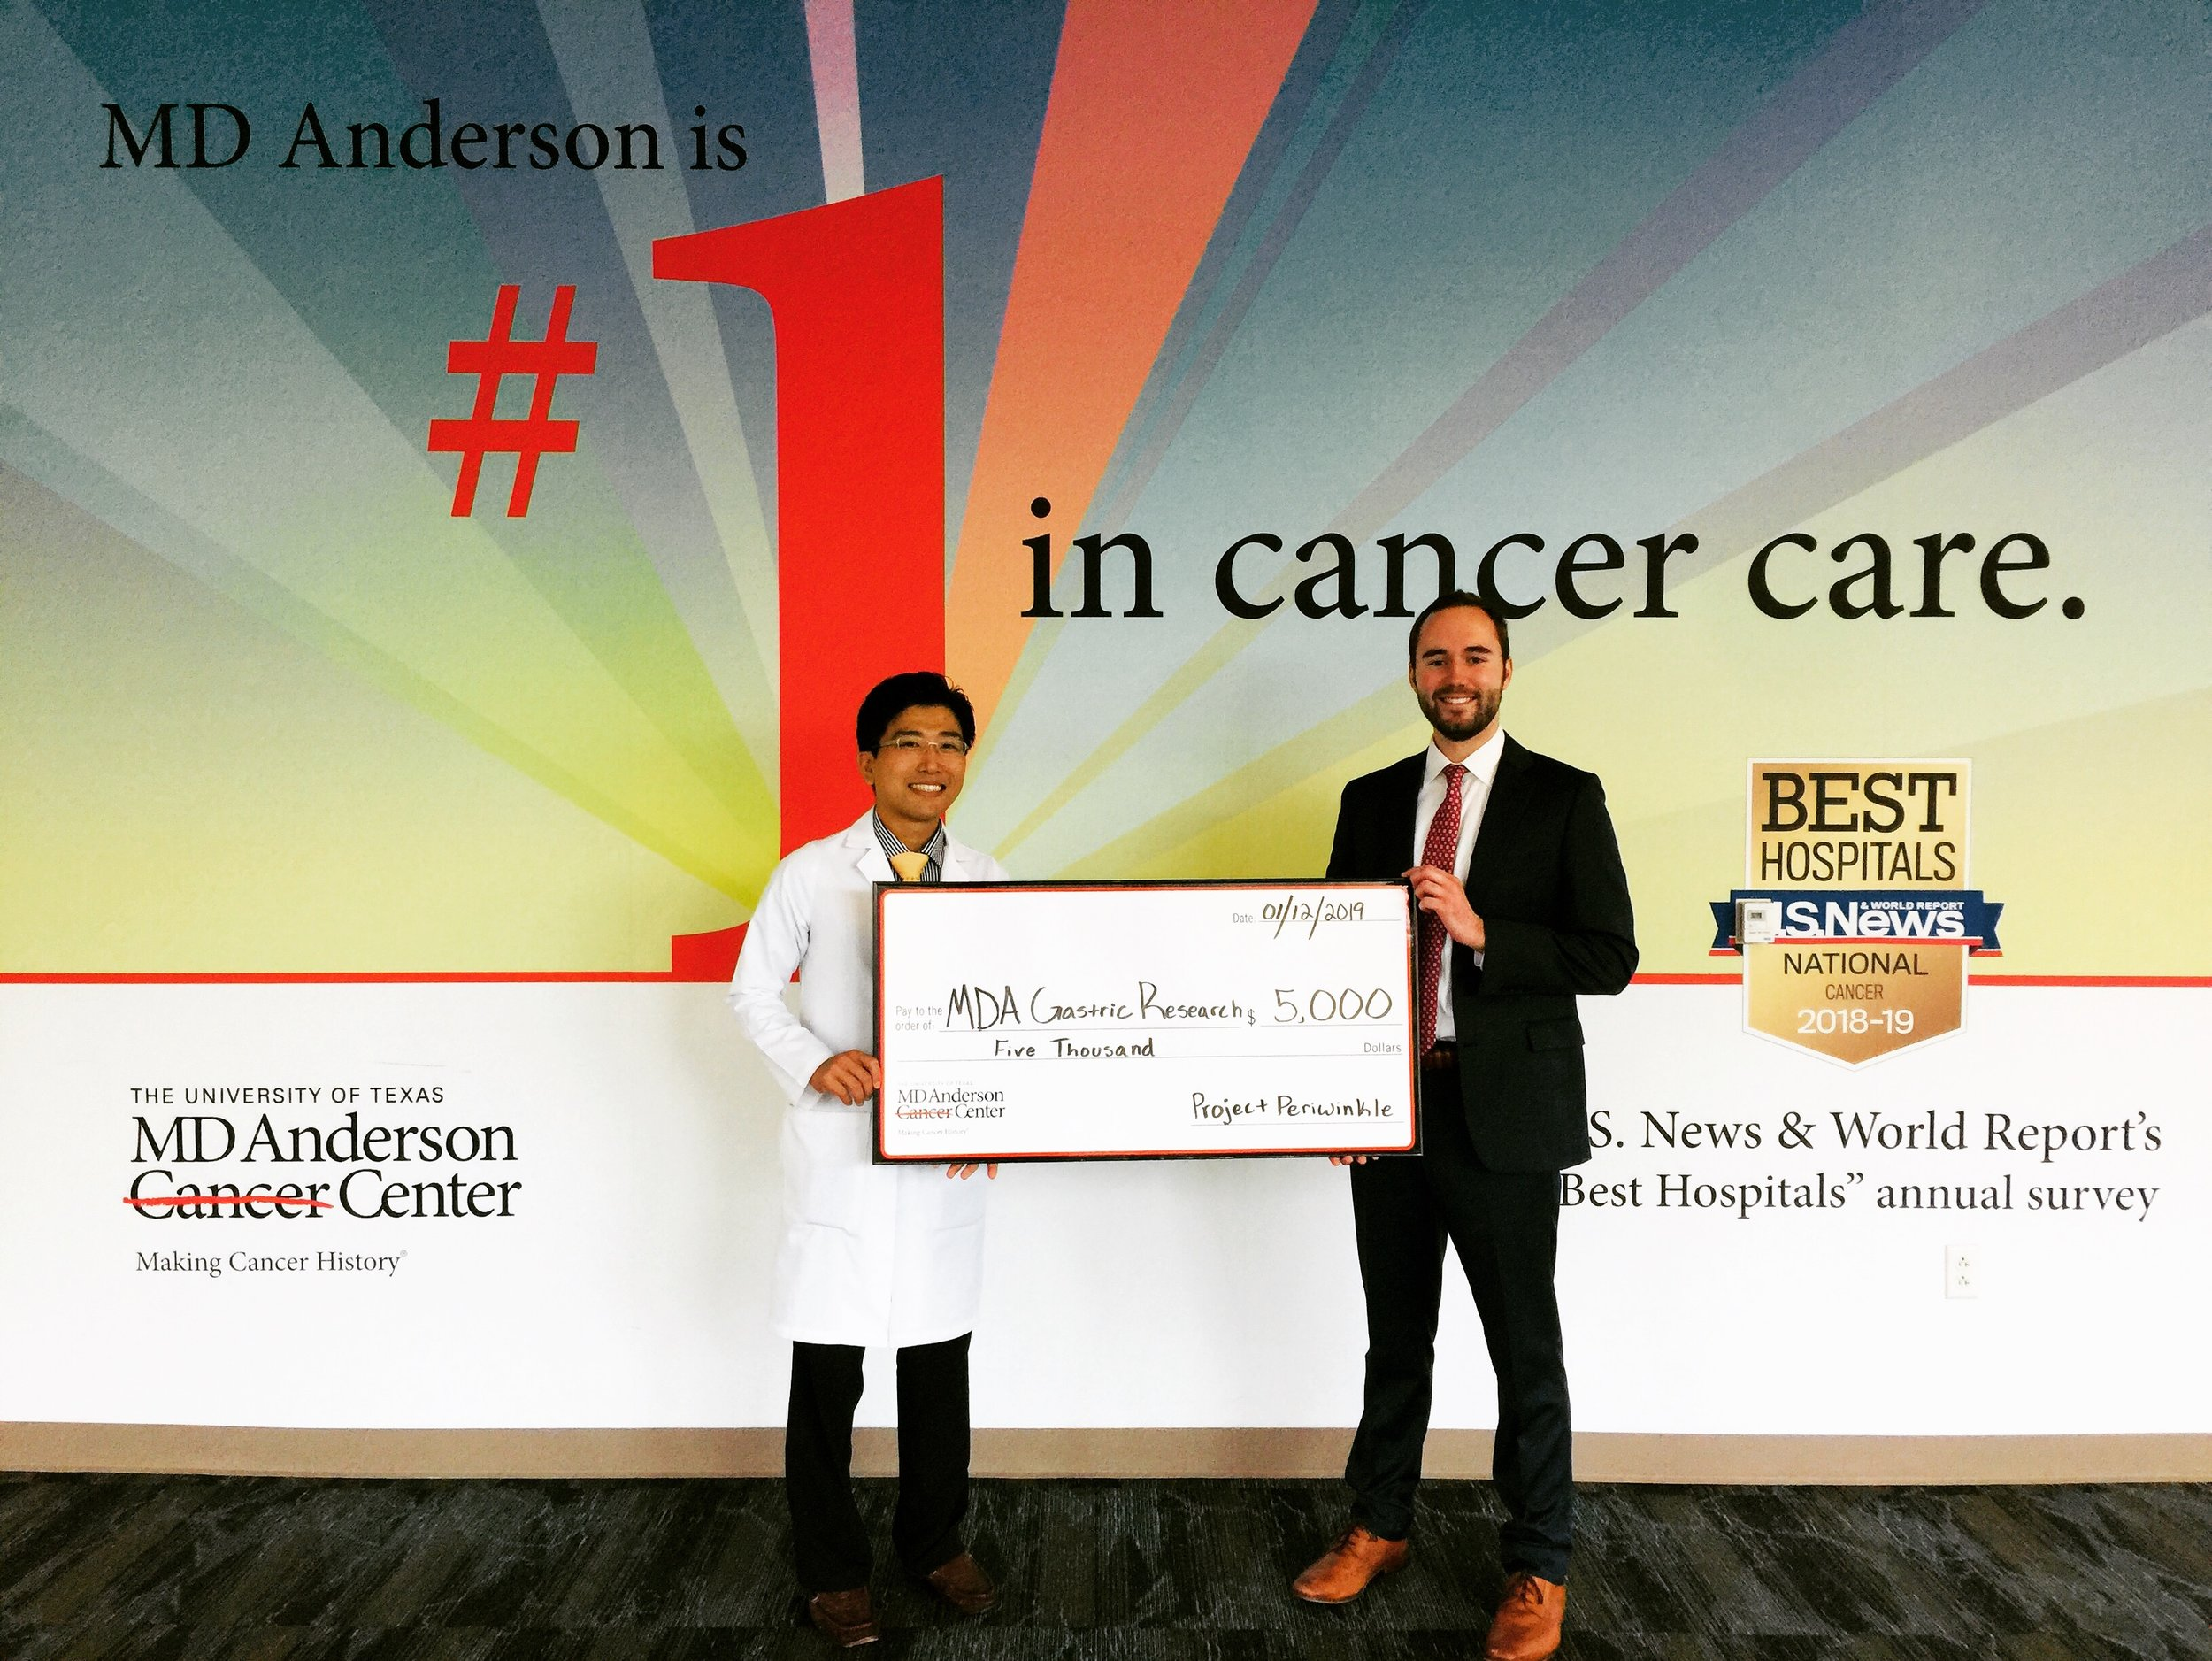 On January 12, 2019, founder and president, Ben Broghammer, formally presented our gift to MD Anderson, pictured with Dr. Naruhiko Ikoma, MD, MS, who is one of three physicians leading the gastric cancer research program at the center.